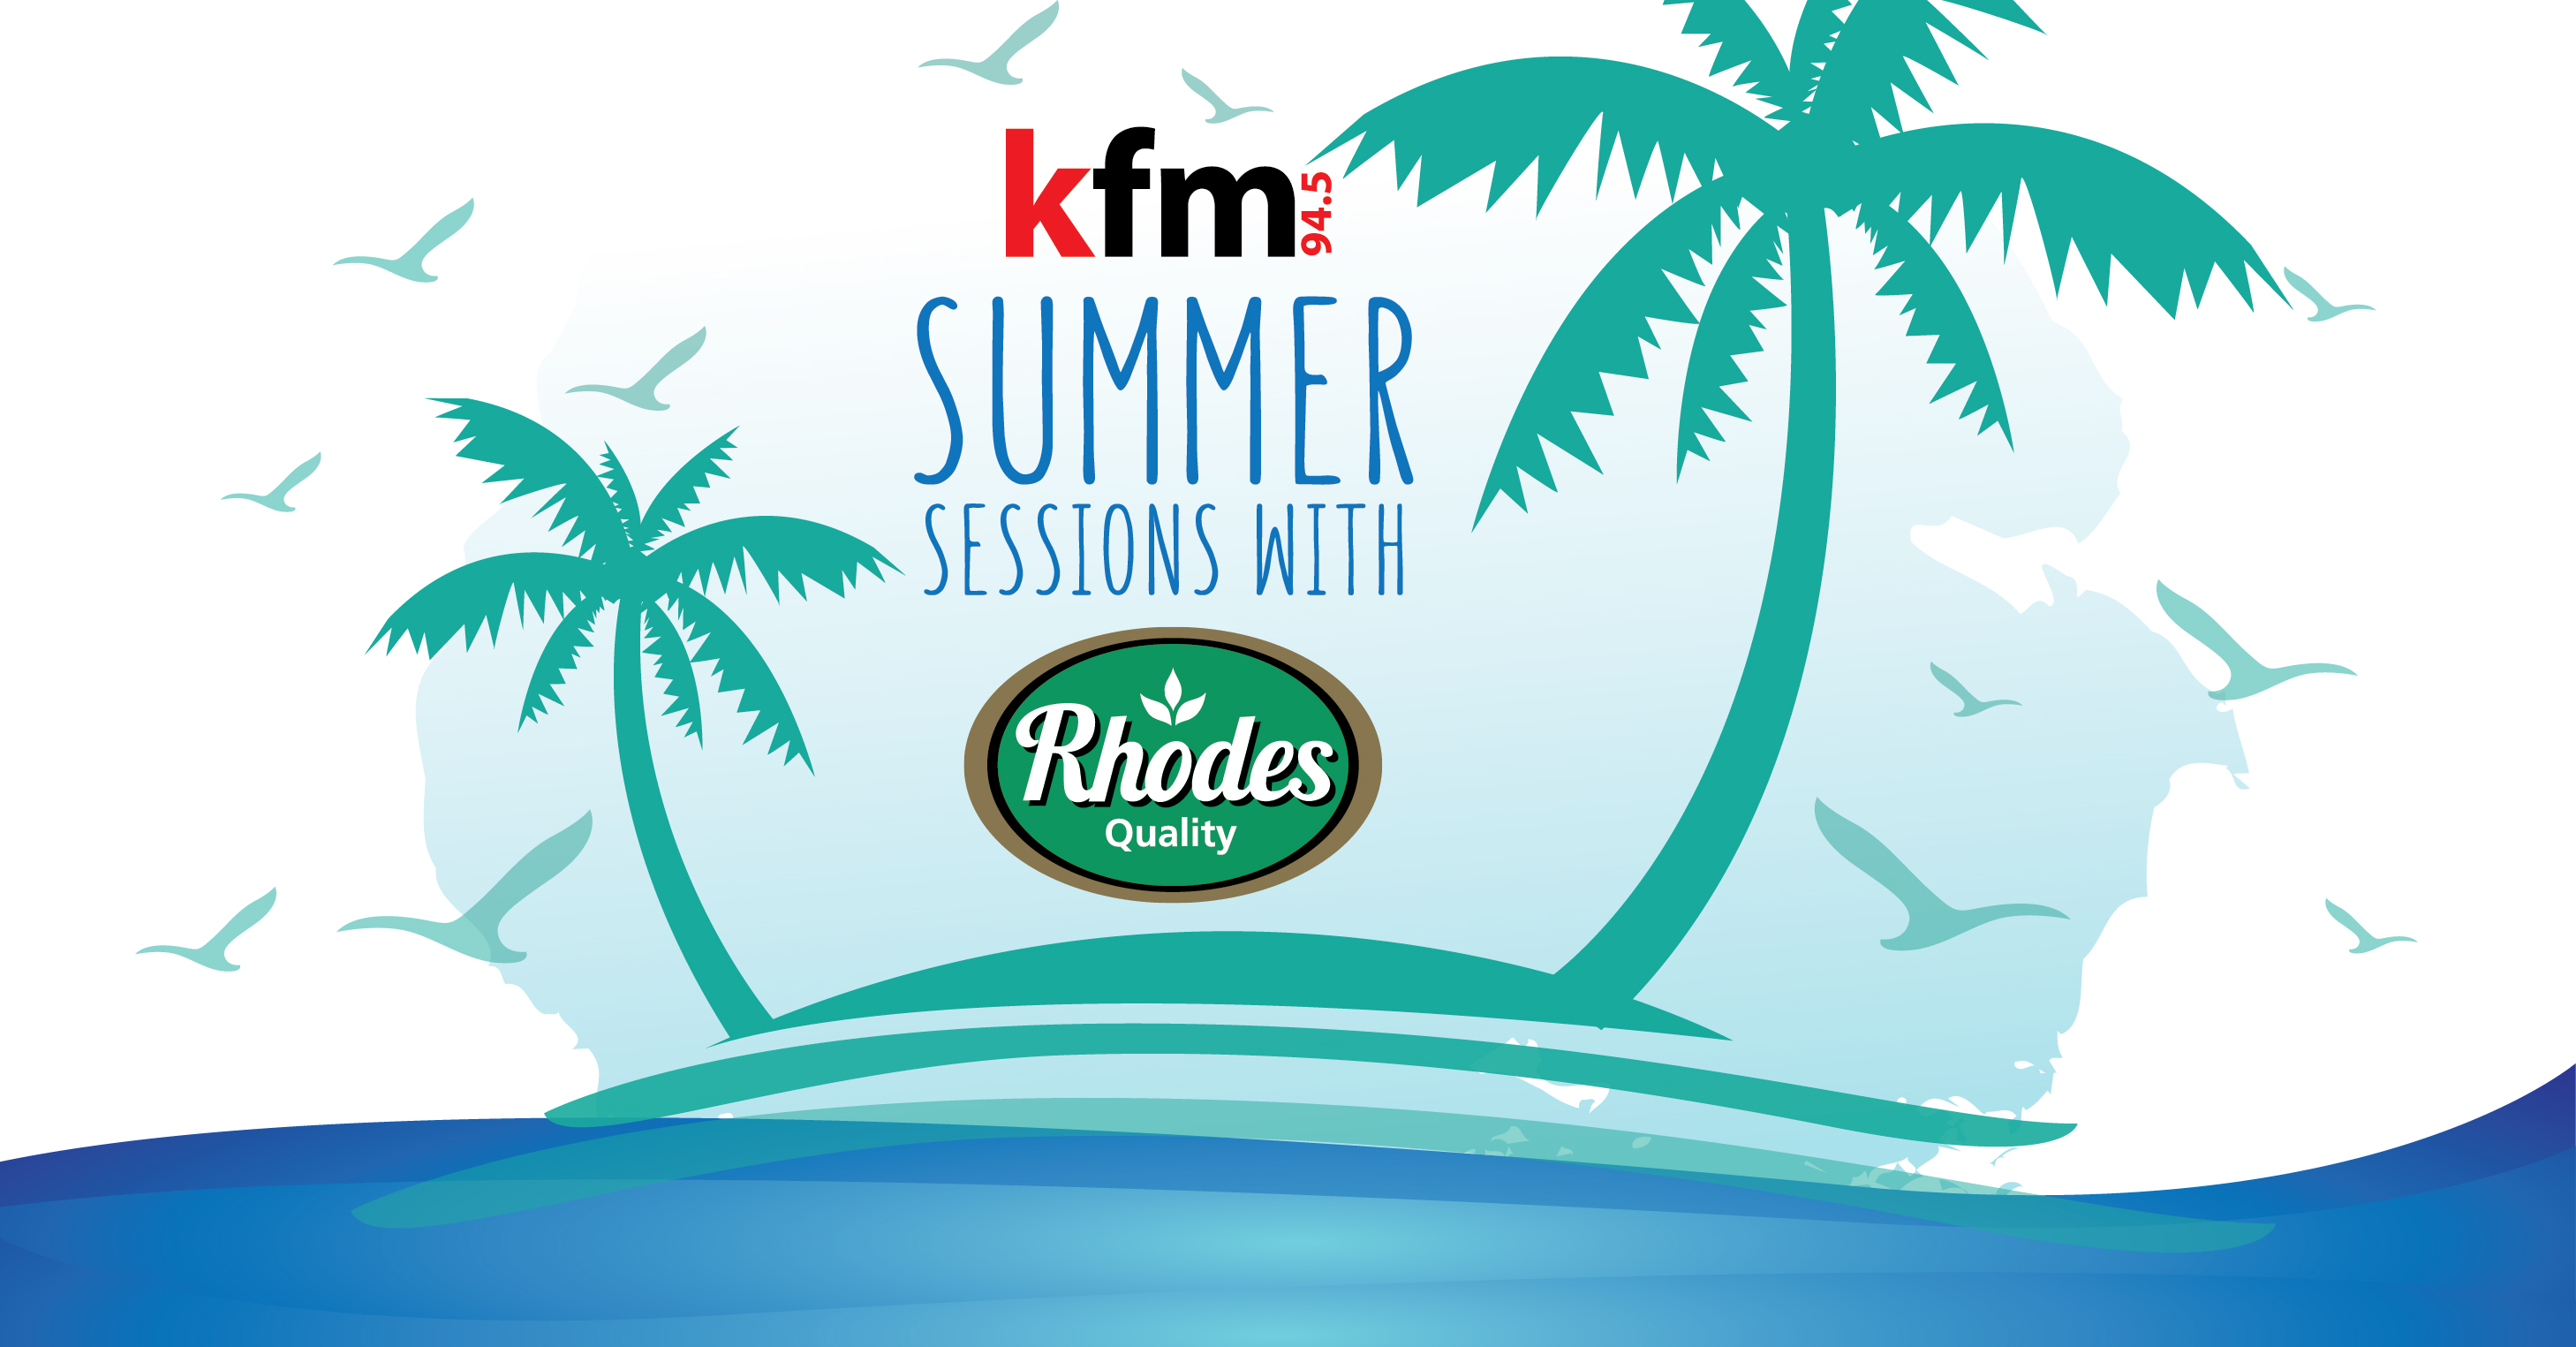 KFM SUMMER SESSIONS WITH RHODES